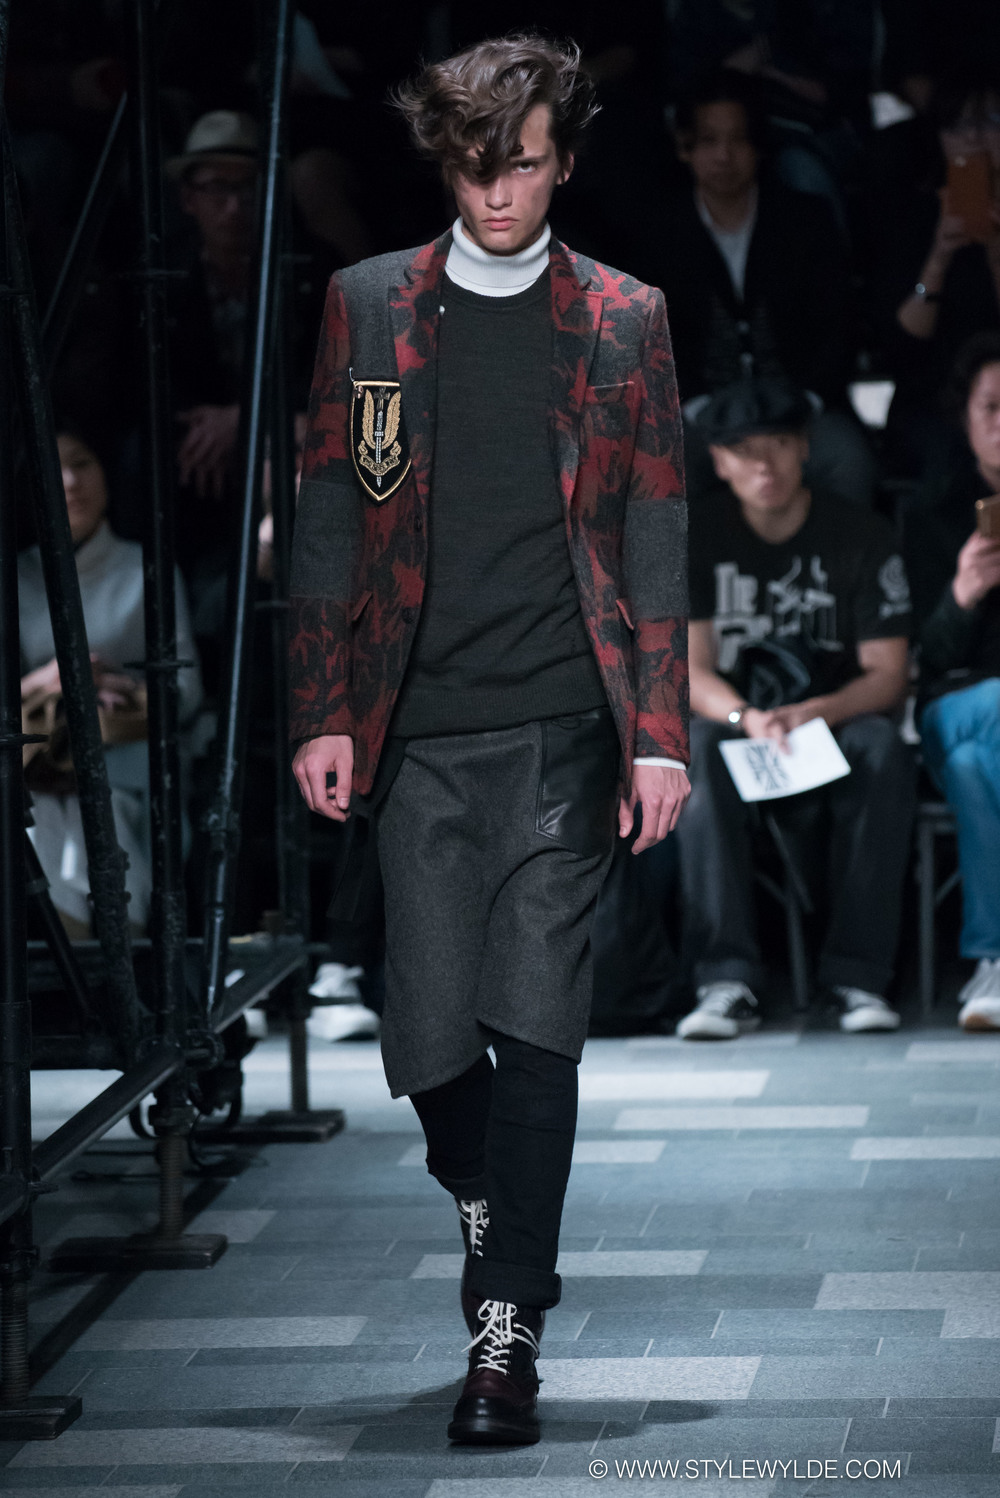 stylewylde_5351_pour_les_hommes_fw_2016-2-2.jpg